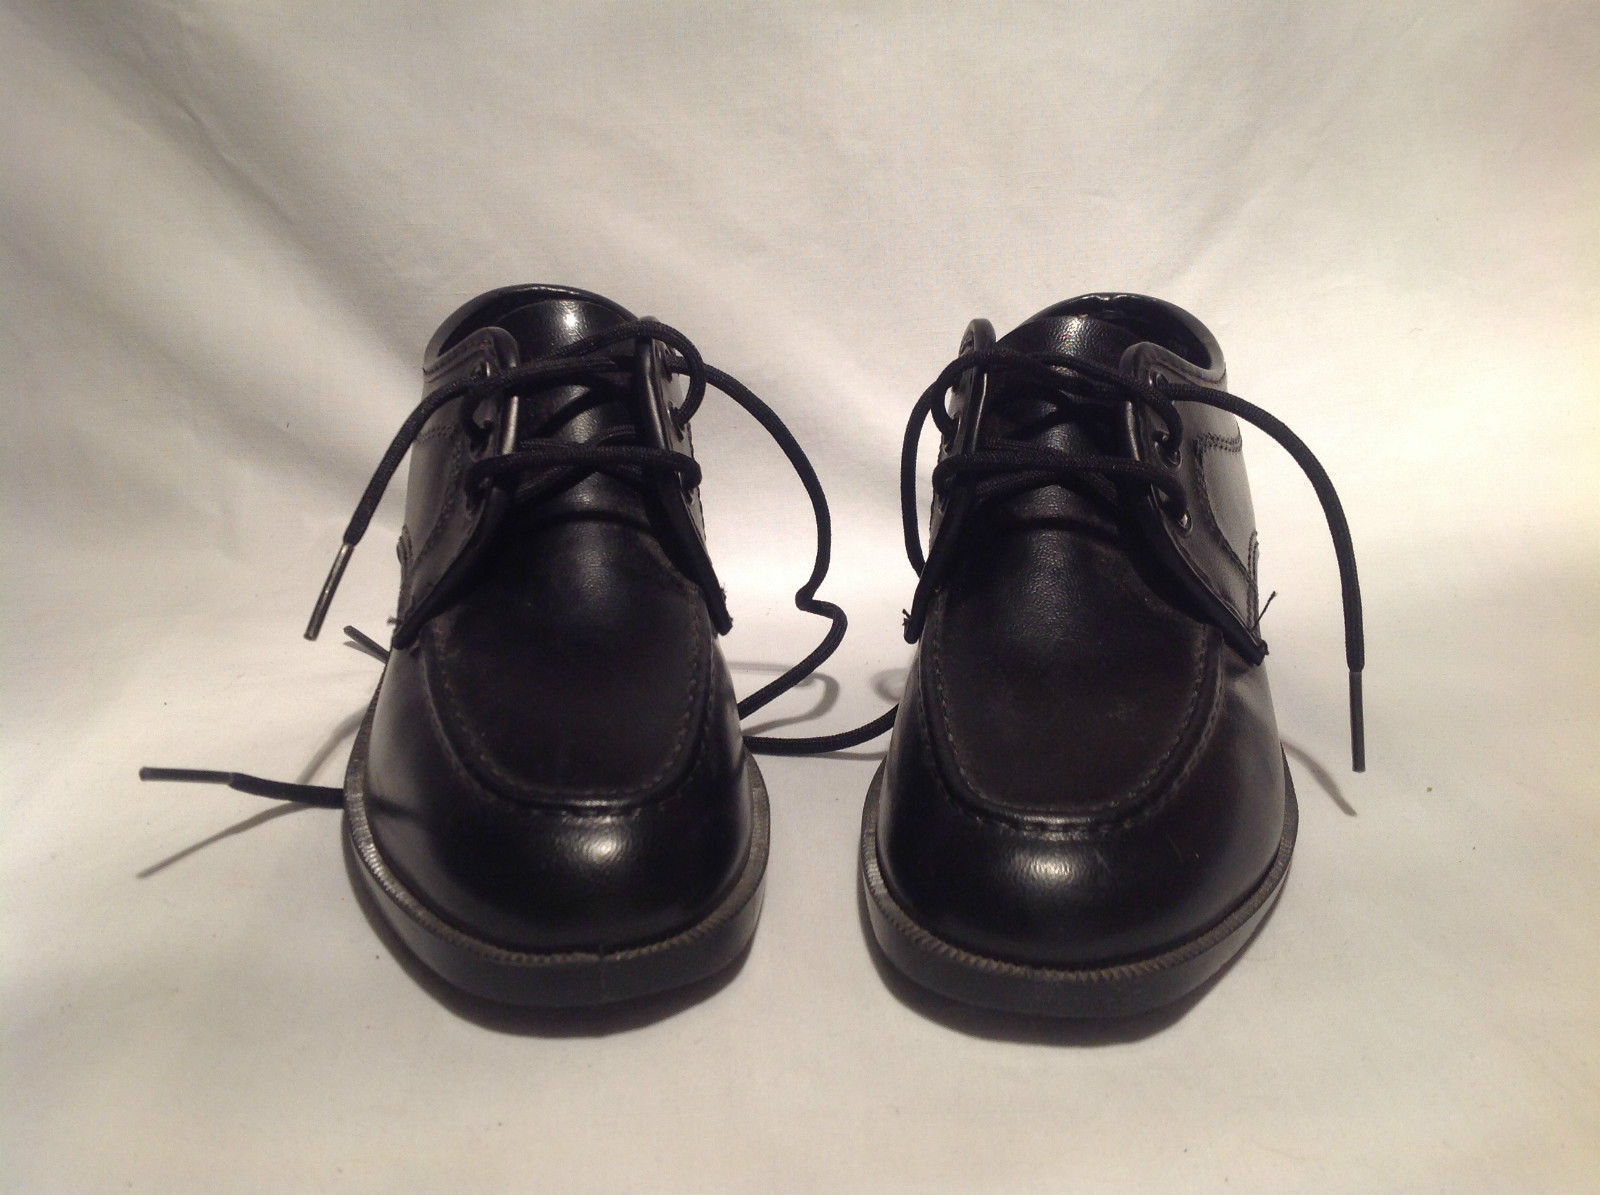 Sunbacker Black Tied Dress Shoes Good Condition with Light Wear Size 12.5M